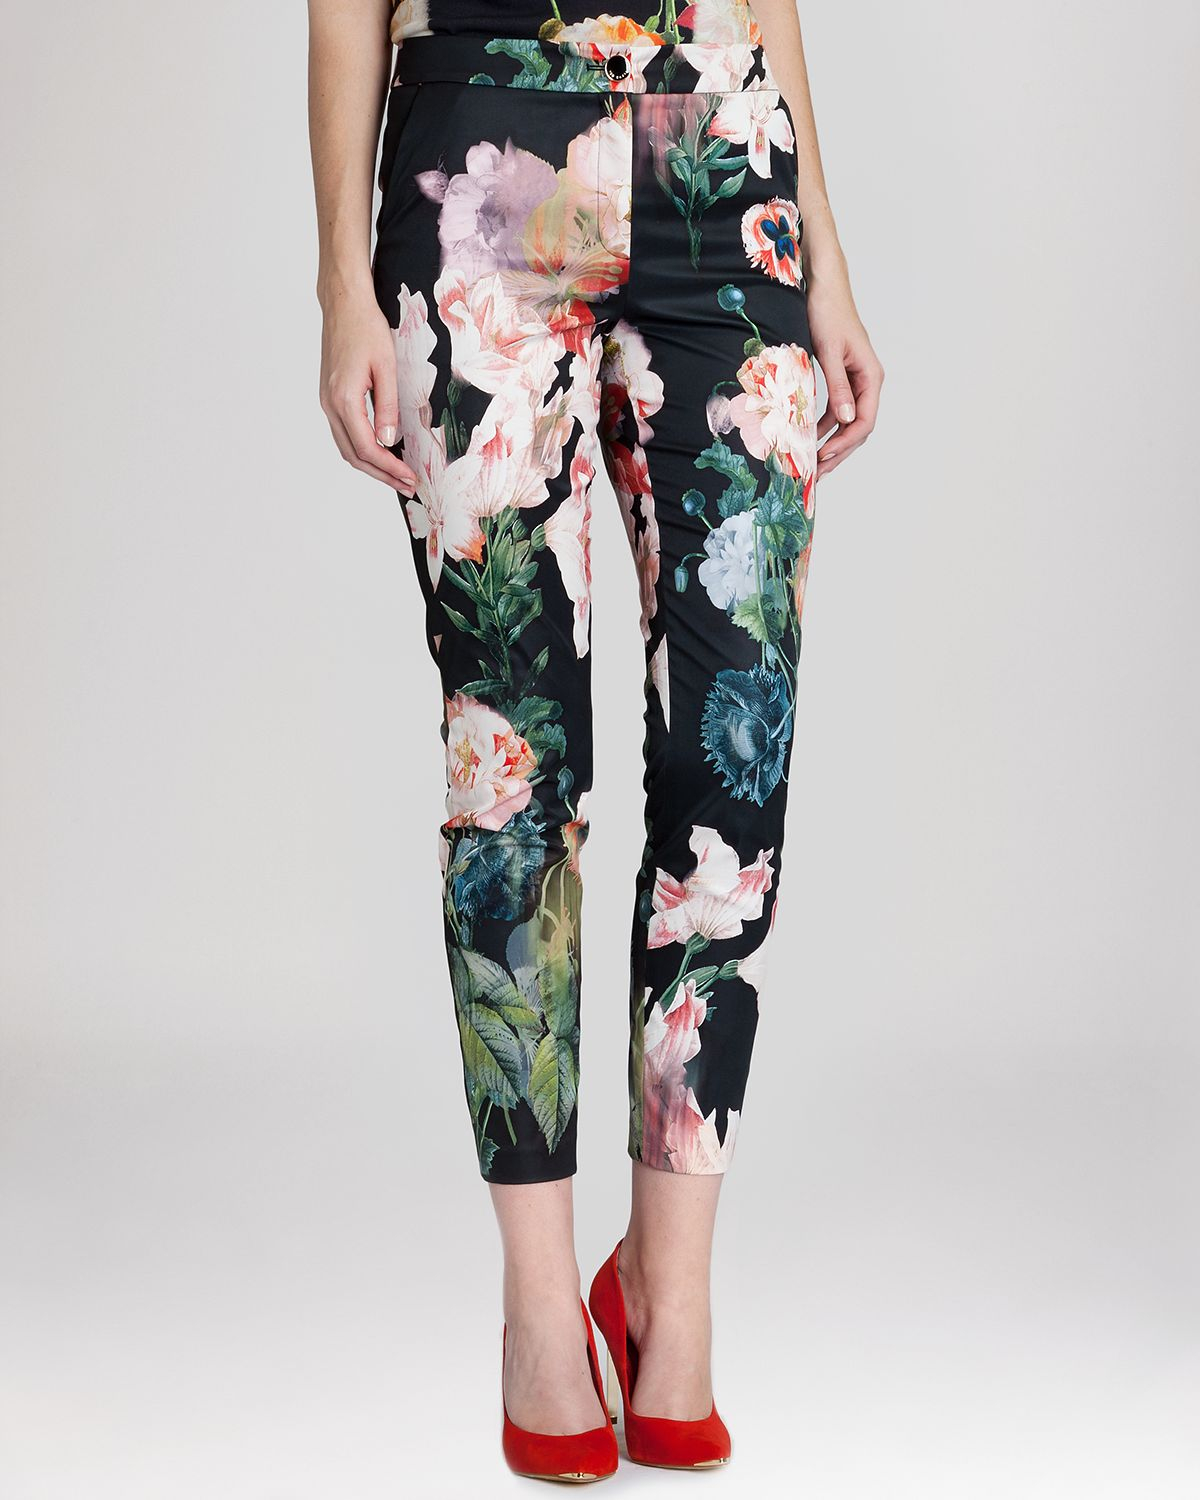 93e520fe7 Lyst - Ted Baker Odra Ethereal Posie Trousers in Black